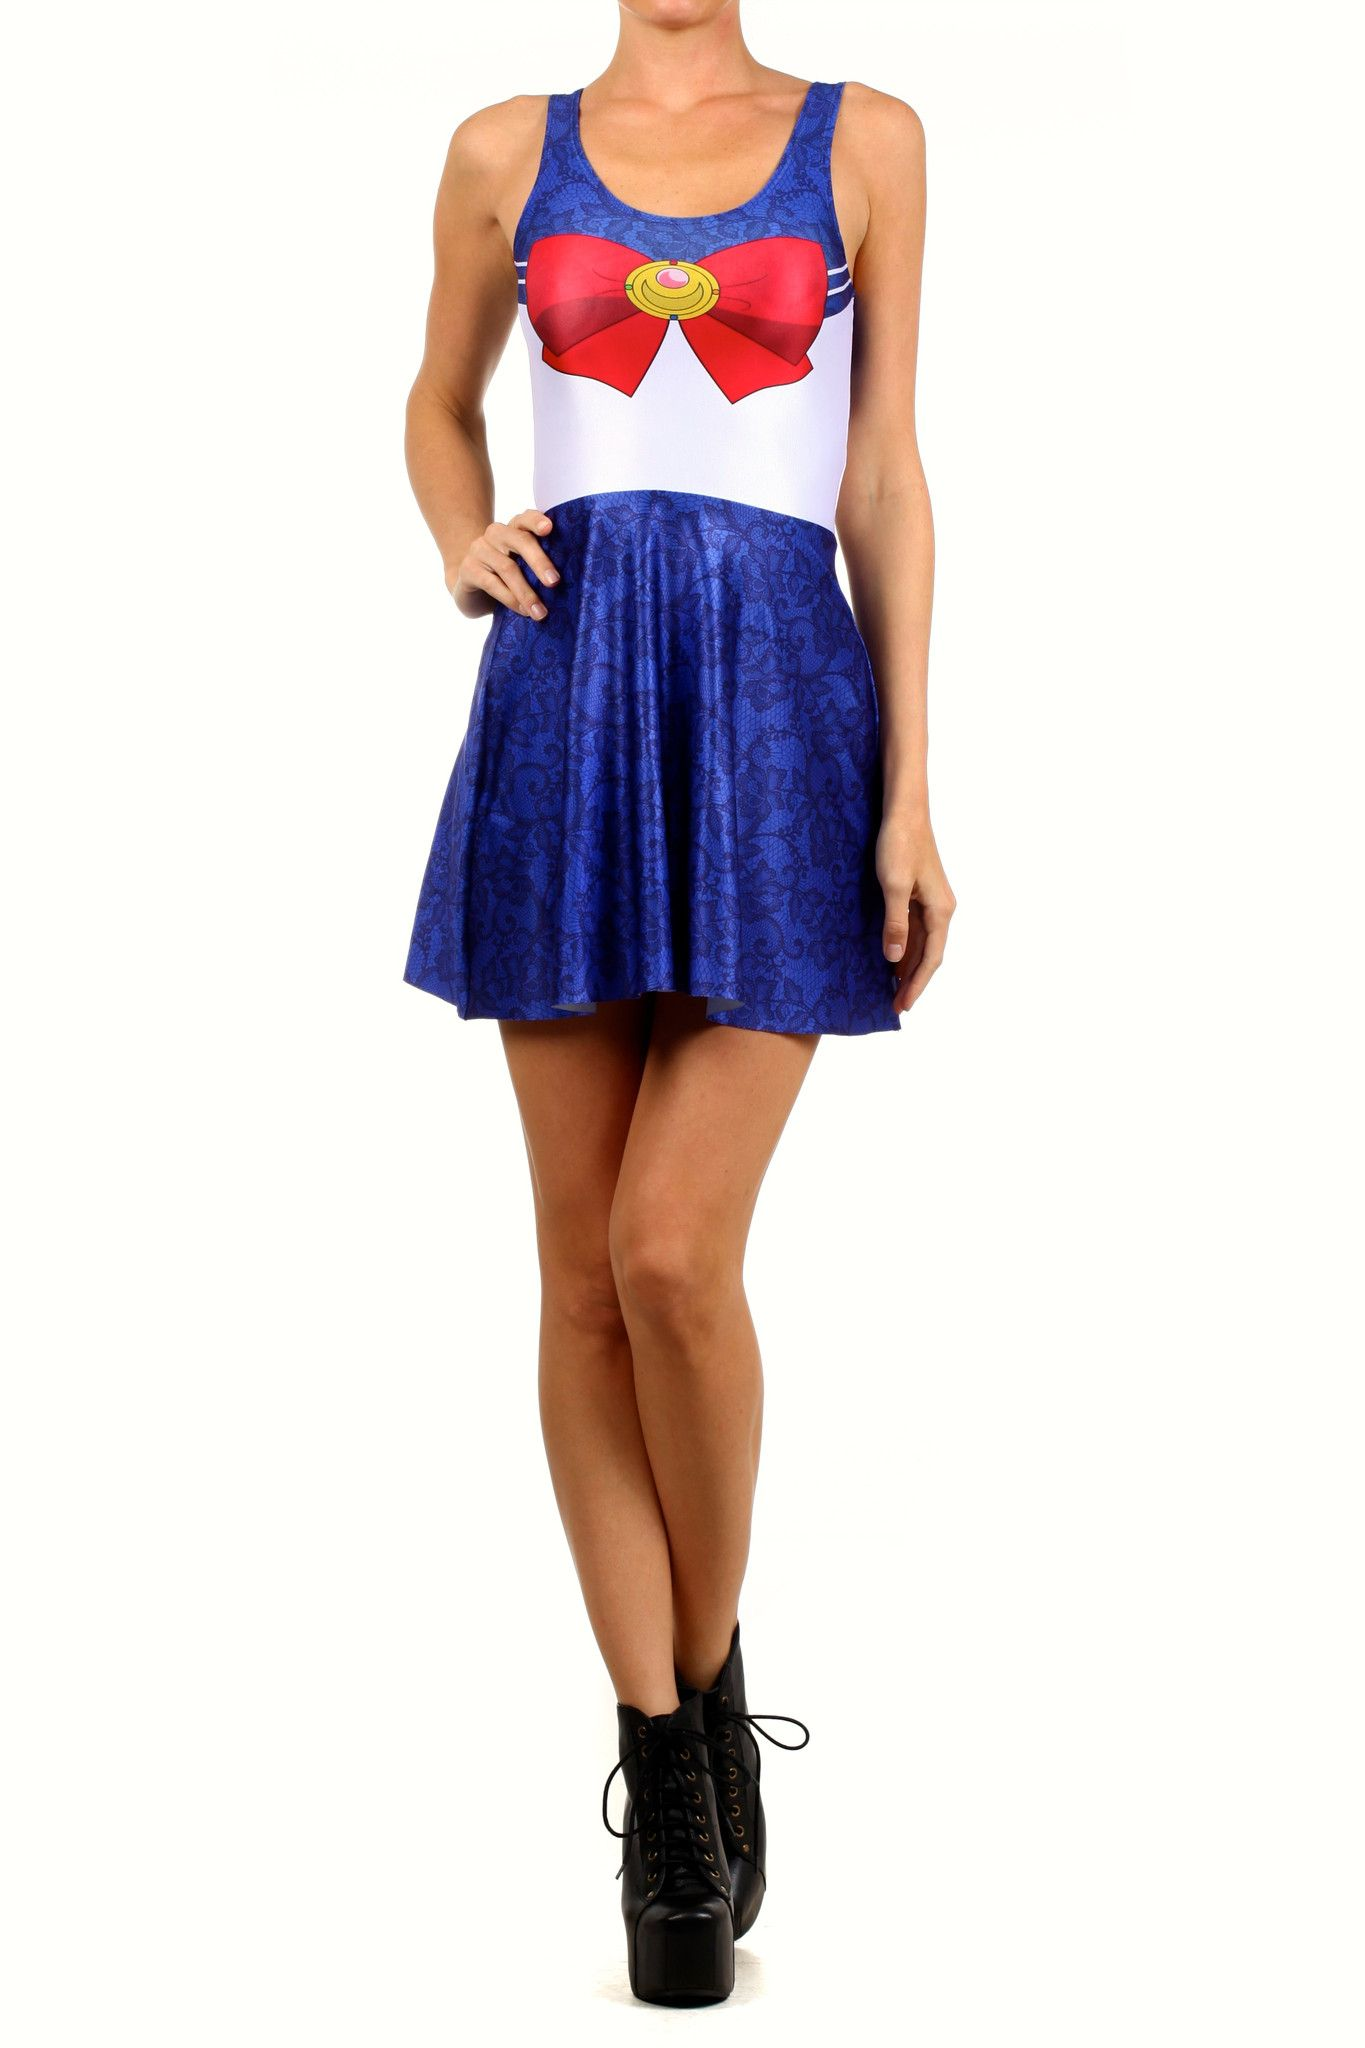 Sailor Skater Dress from POPRAGEOUS.com